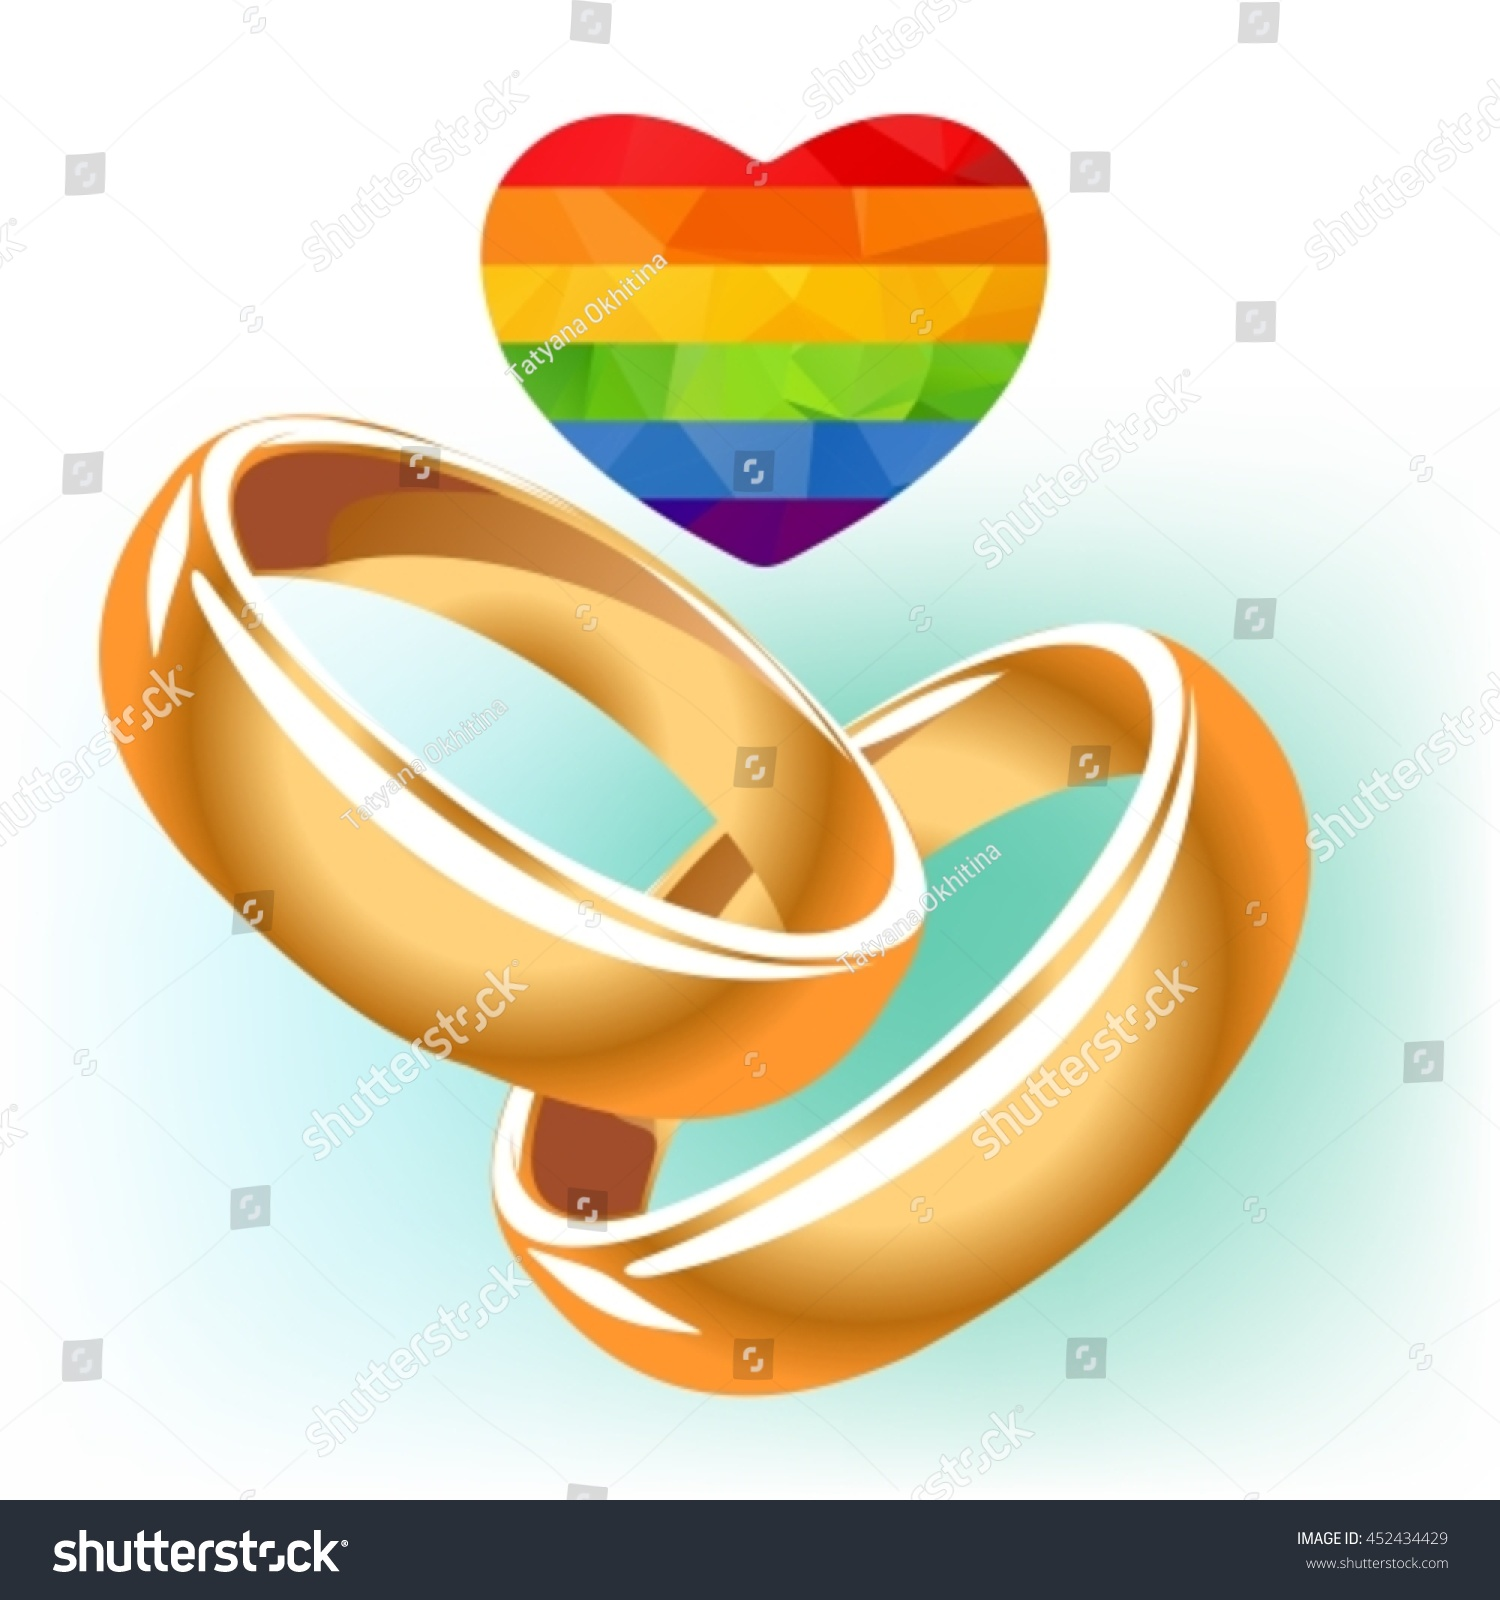 rings ring and more wedding fashion com lgbt from women pridedesignz for group about lesbian men gay products spinner in aliexpress alibaba vnox crystal jewelry box steel picture detailed stainless rainbow